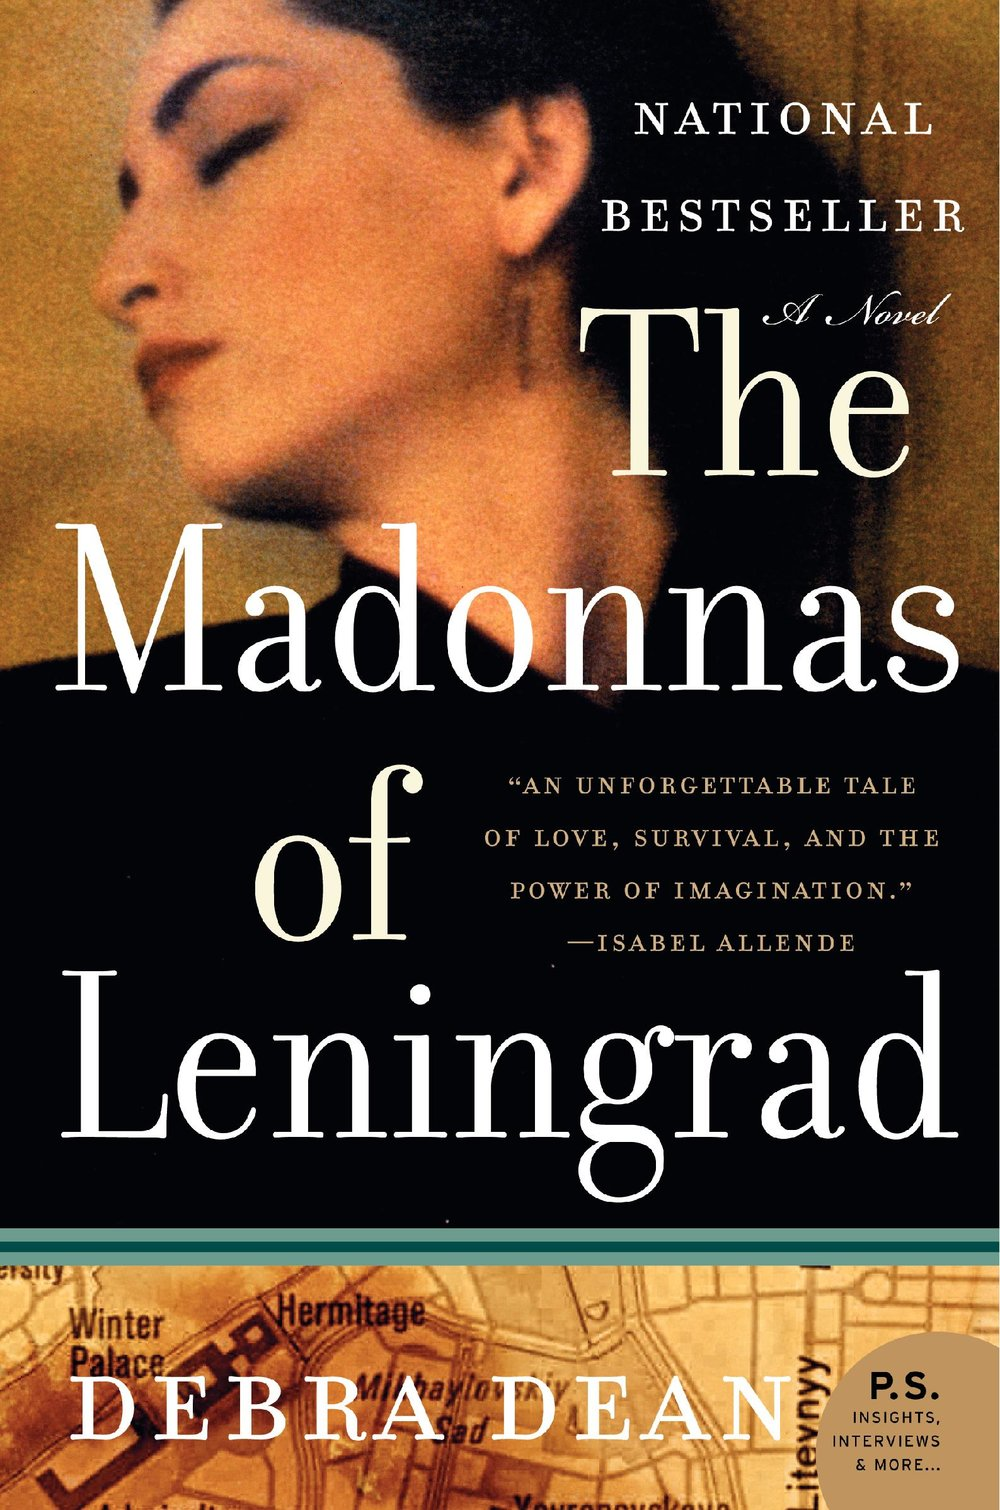 The Madonnas of Leningrad, HarperCollins, 2006